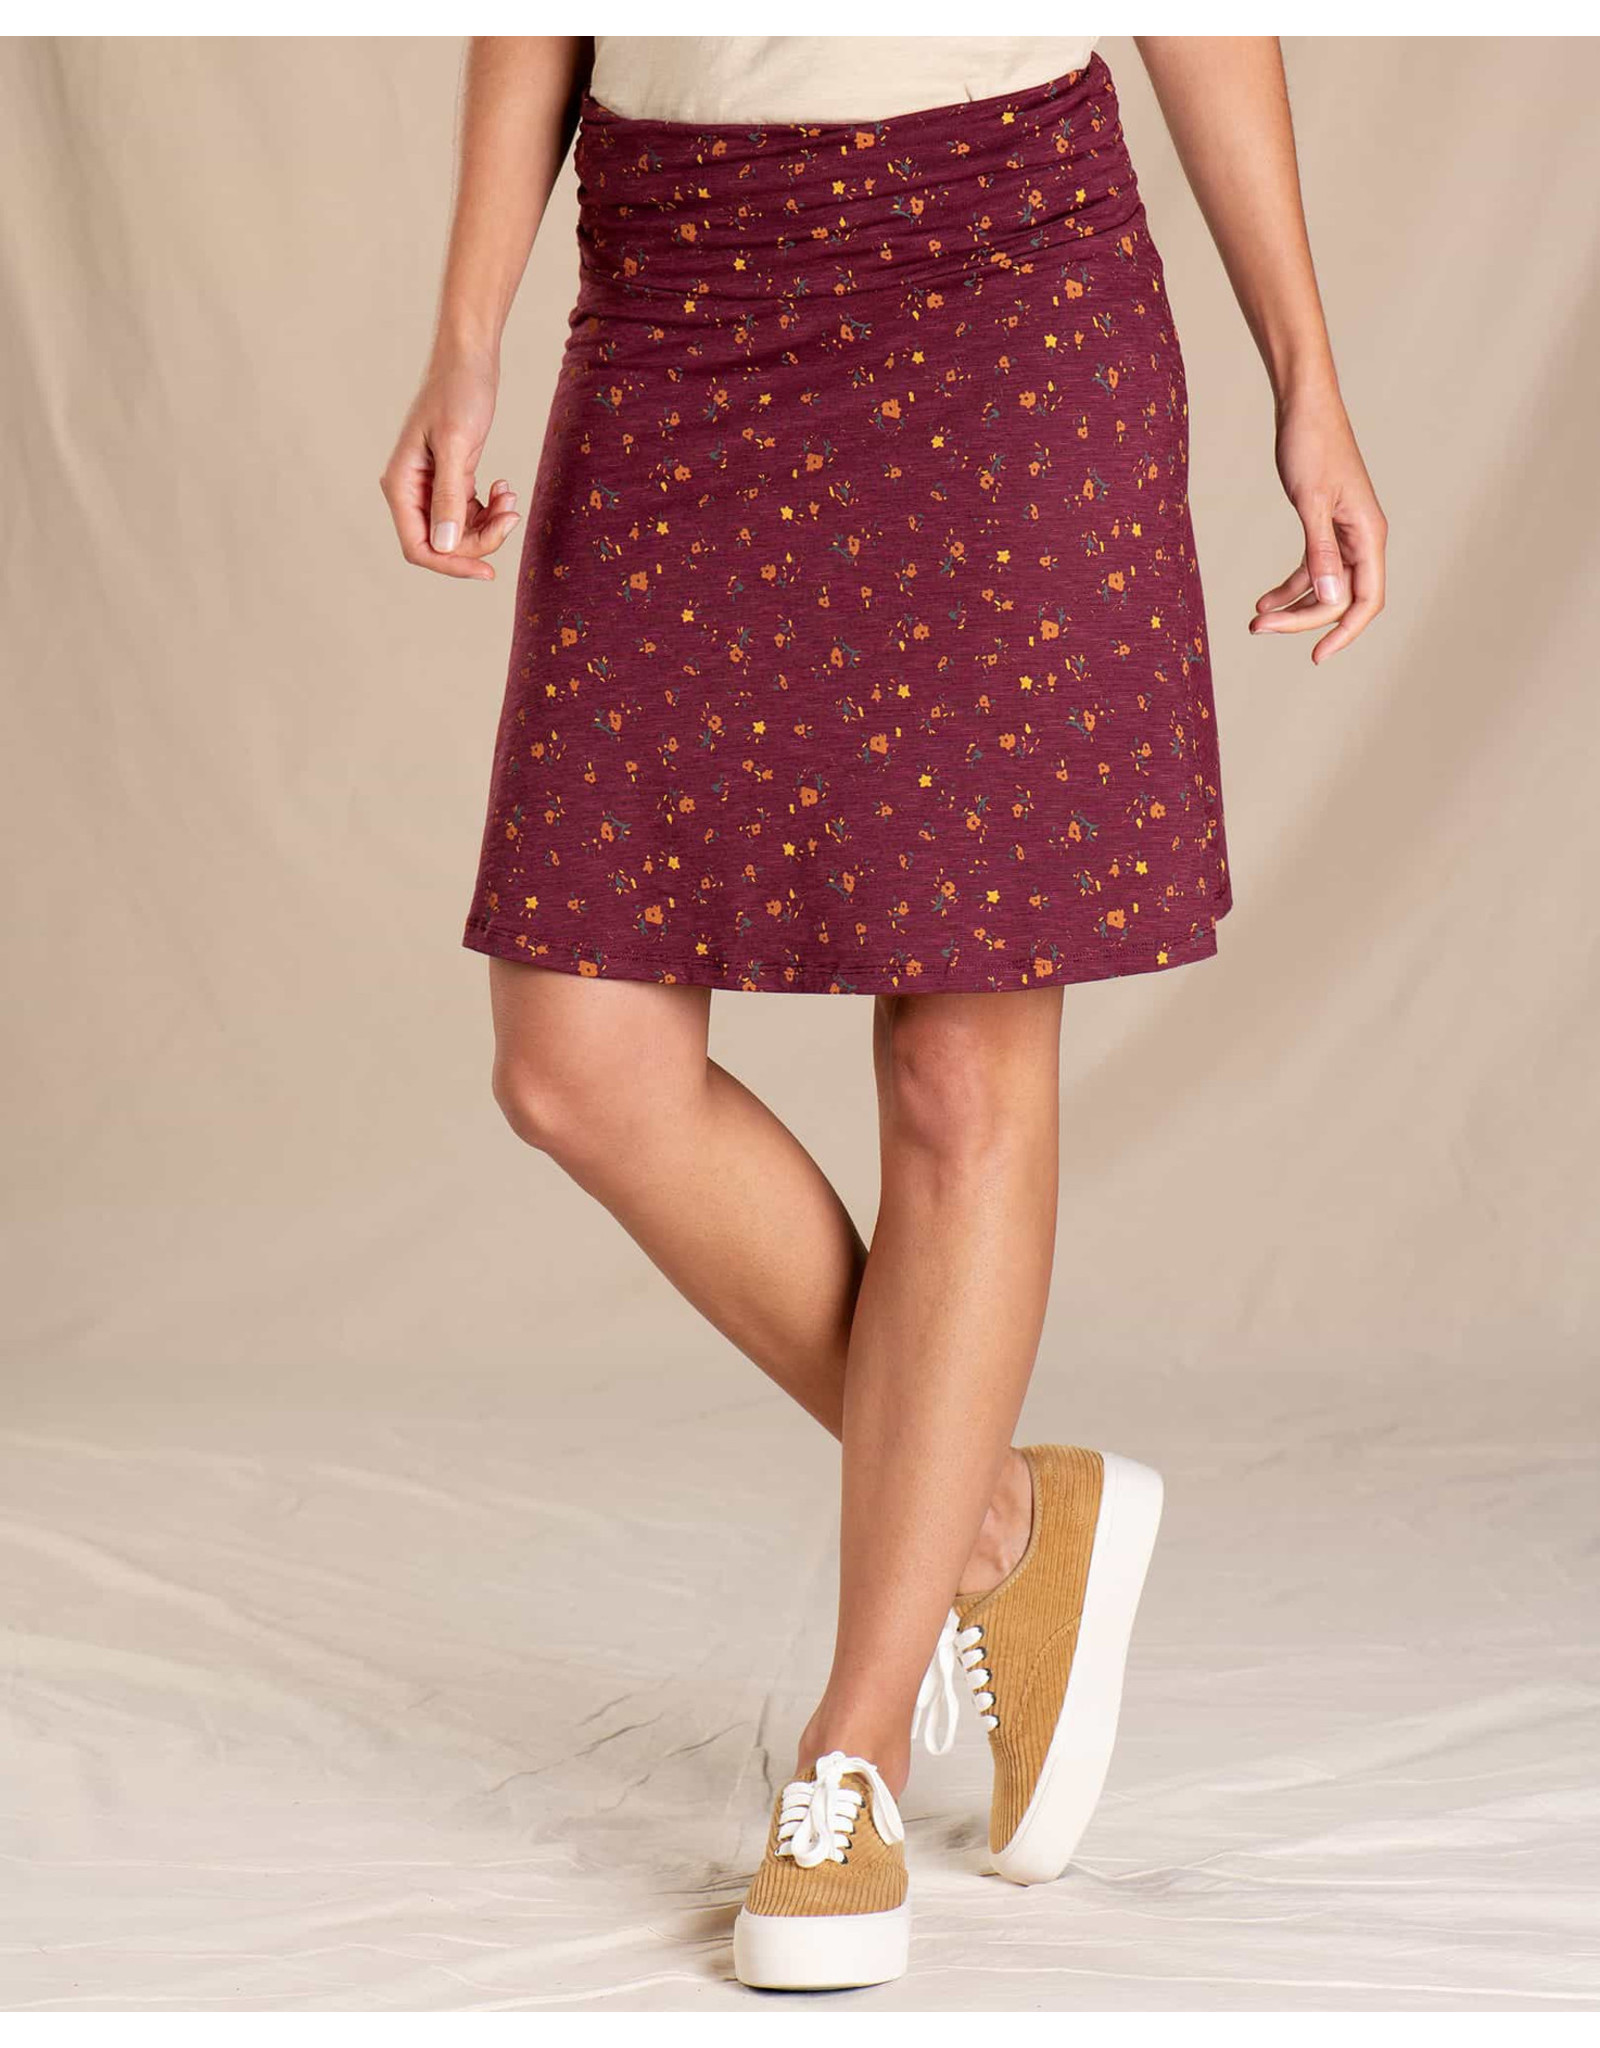 TOAD AND CO WOMEN'S TOAD & CO. CHAKA SKIRT-PORT PAINTERS FLORAL